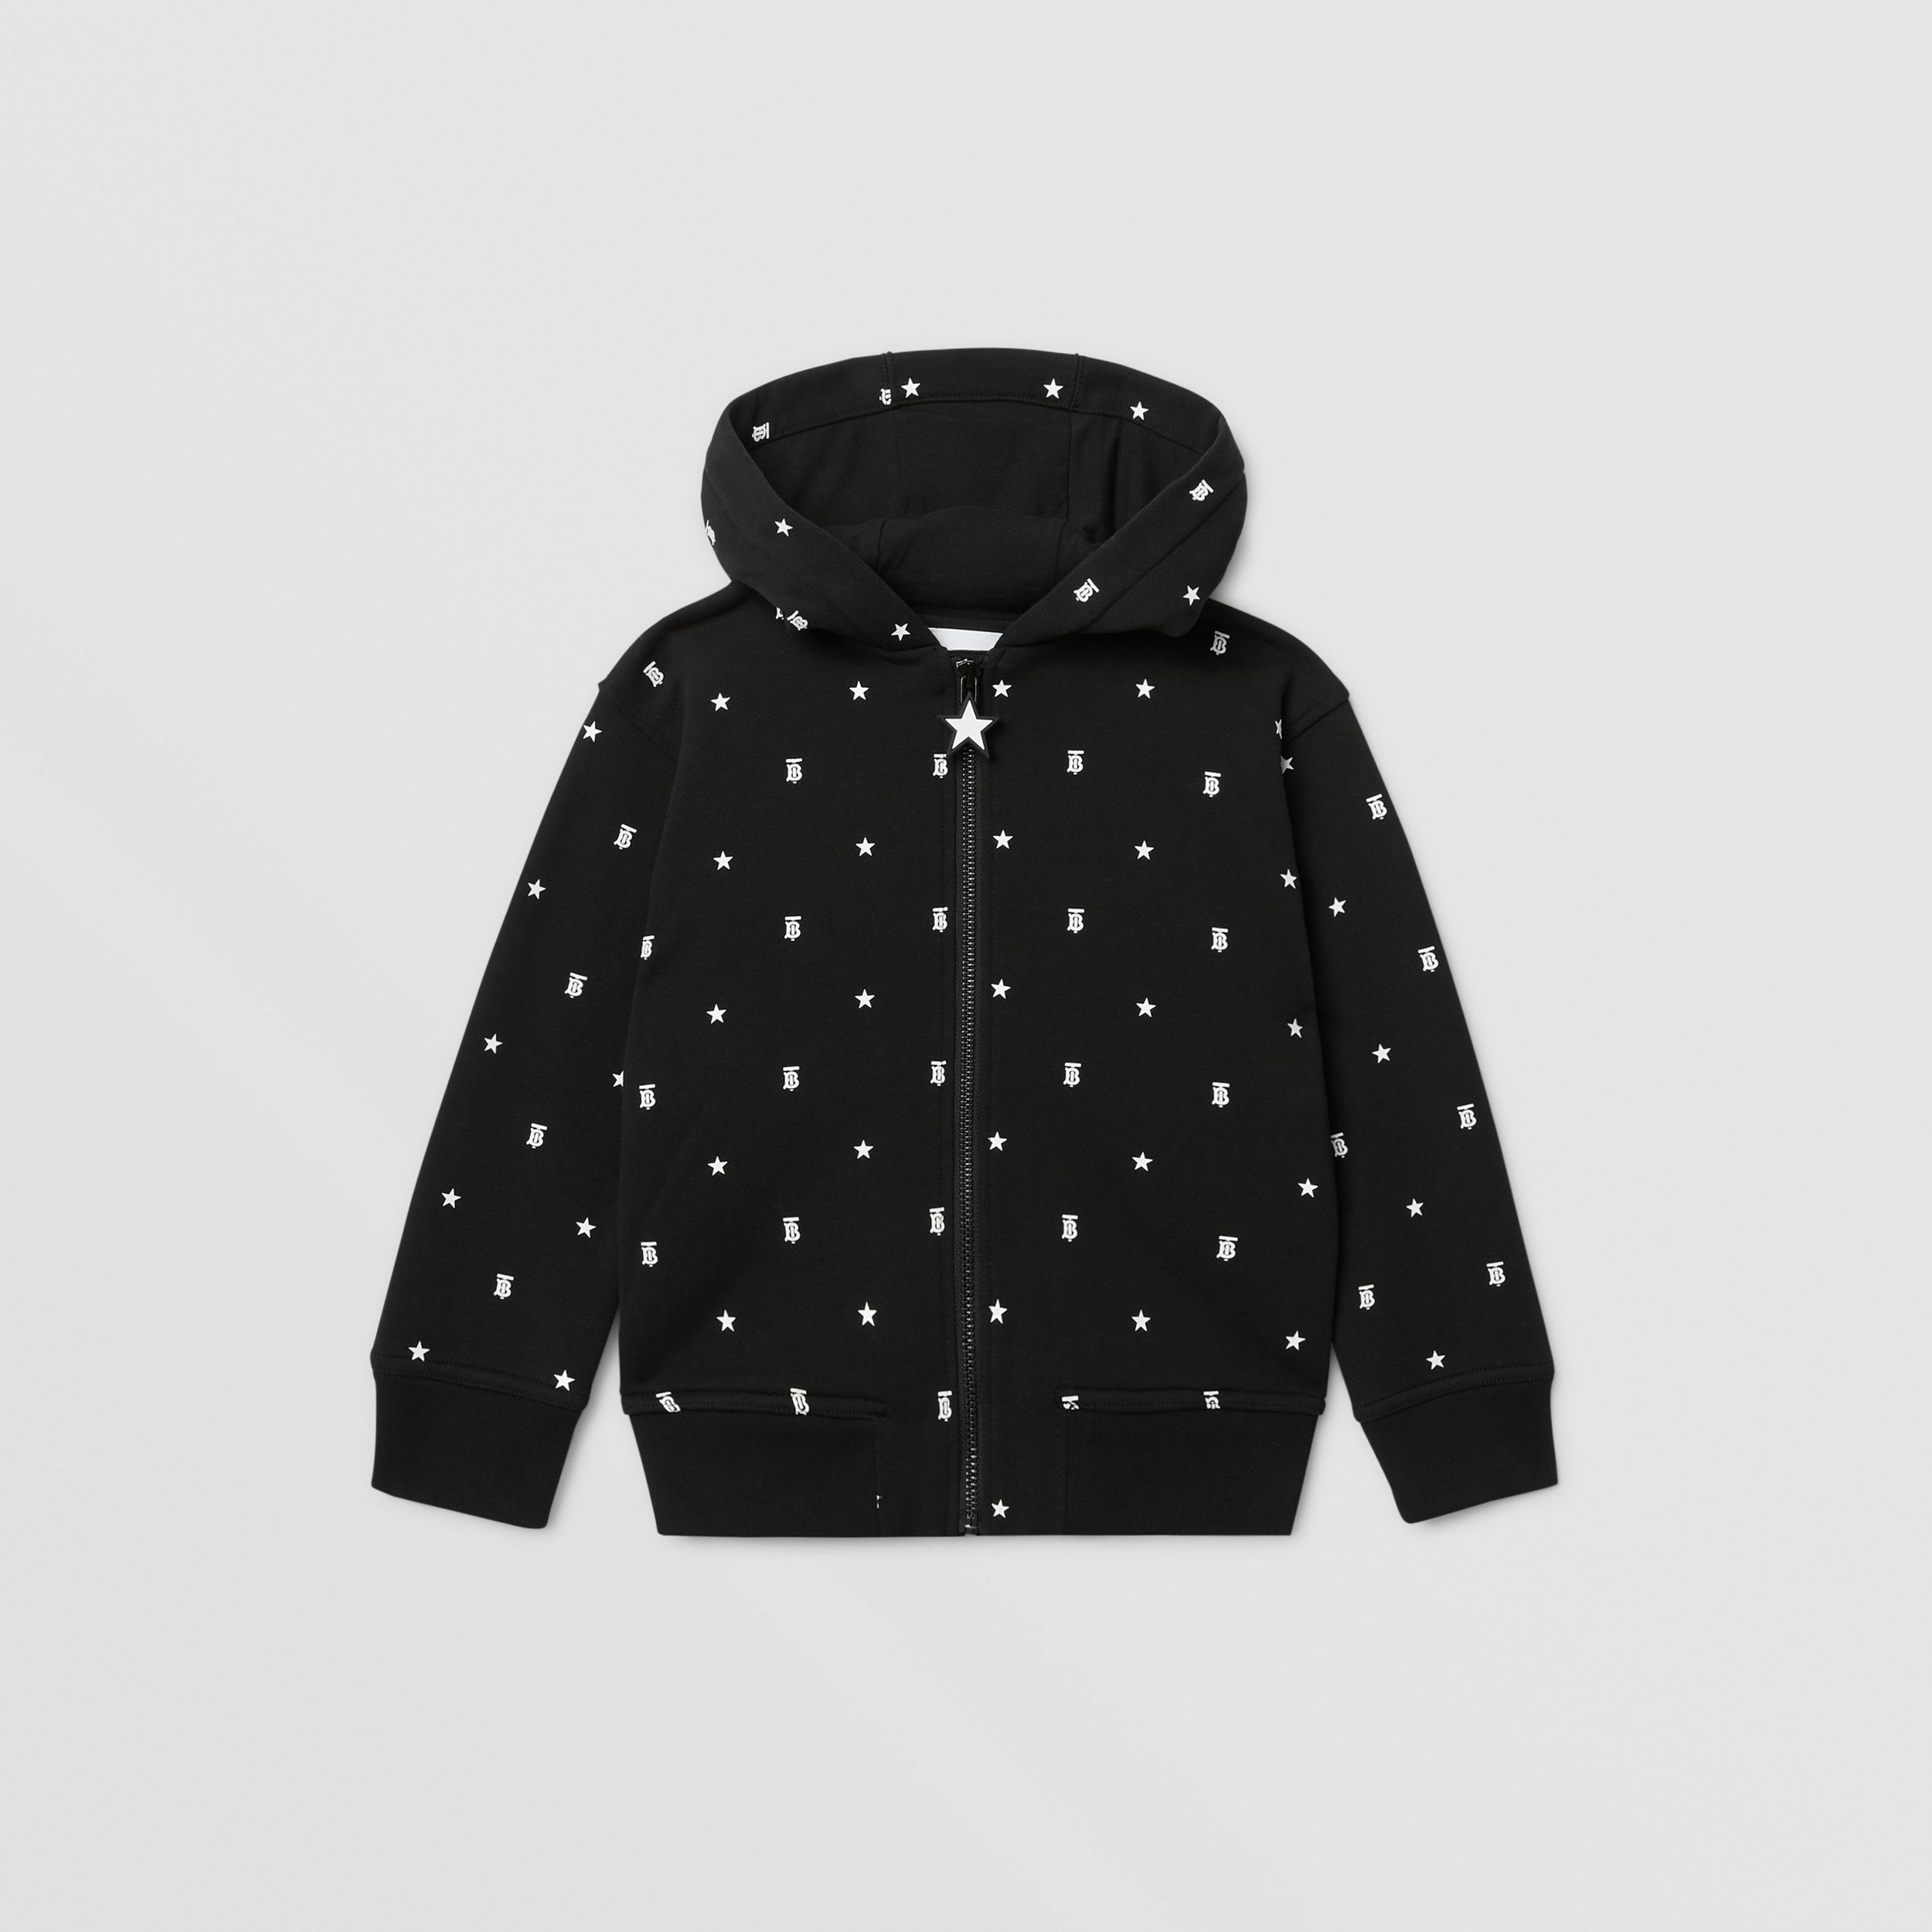 Star and Monogram Motif Cotton Hooded Top in Black | Burberry Hong Kong S.A.R. - 1